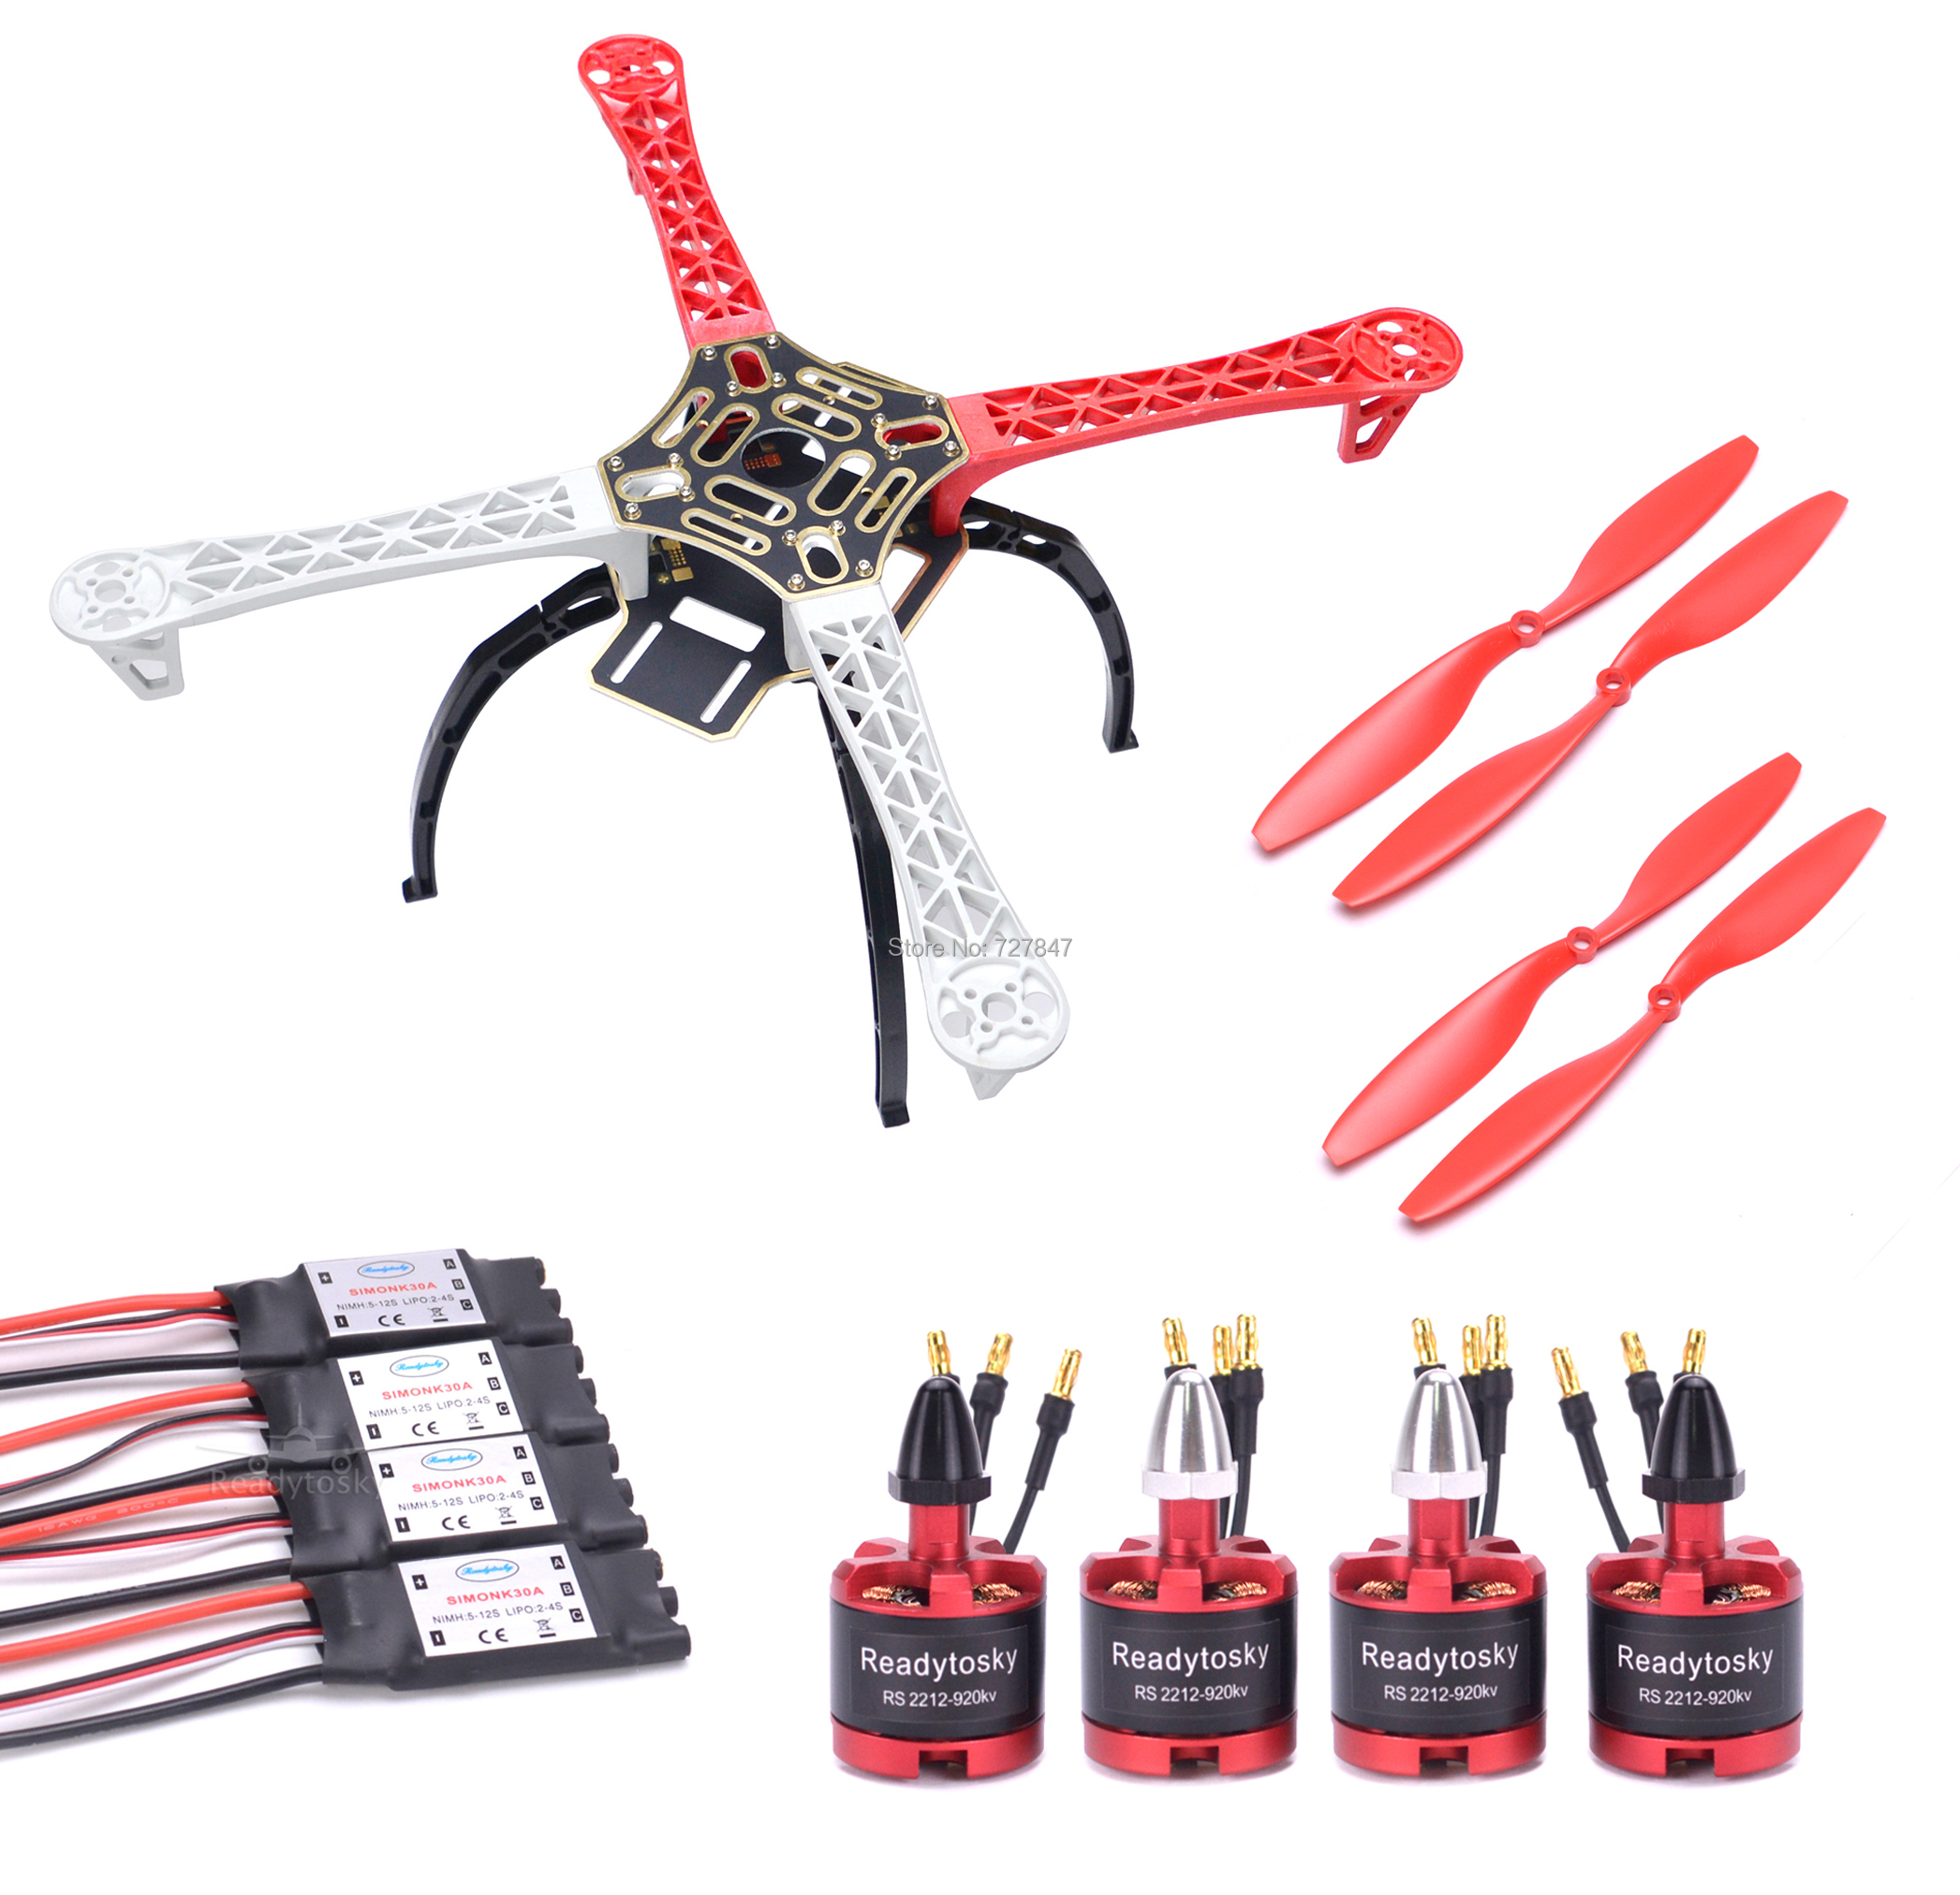 F450 450mm Quadcopter Multicopter Frame Kit 2212 920KV Brushless Motor 30A Simonk ESC 1045 propeller